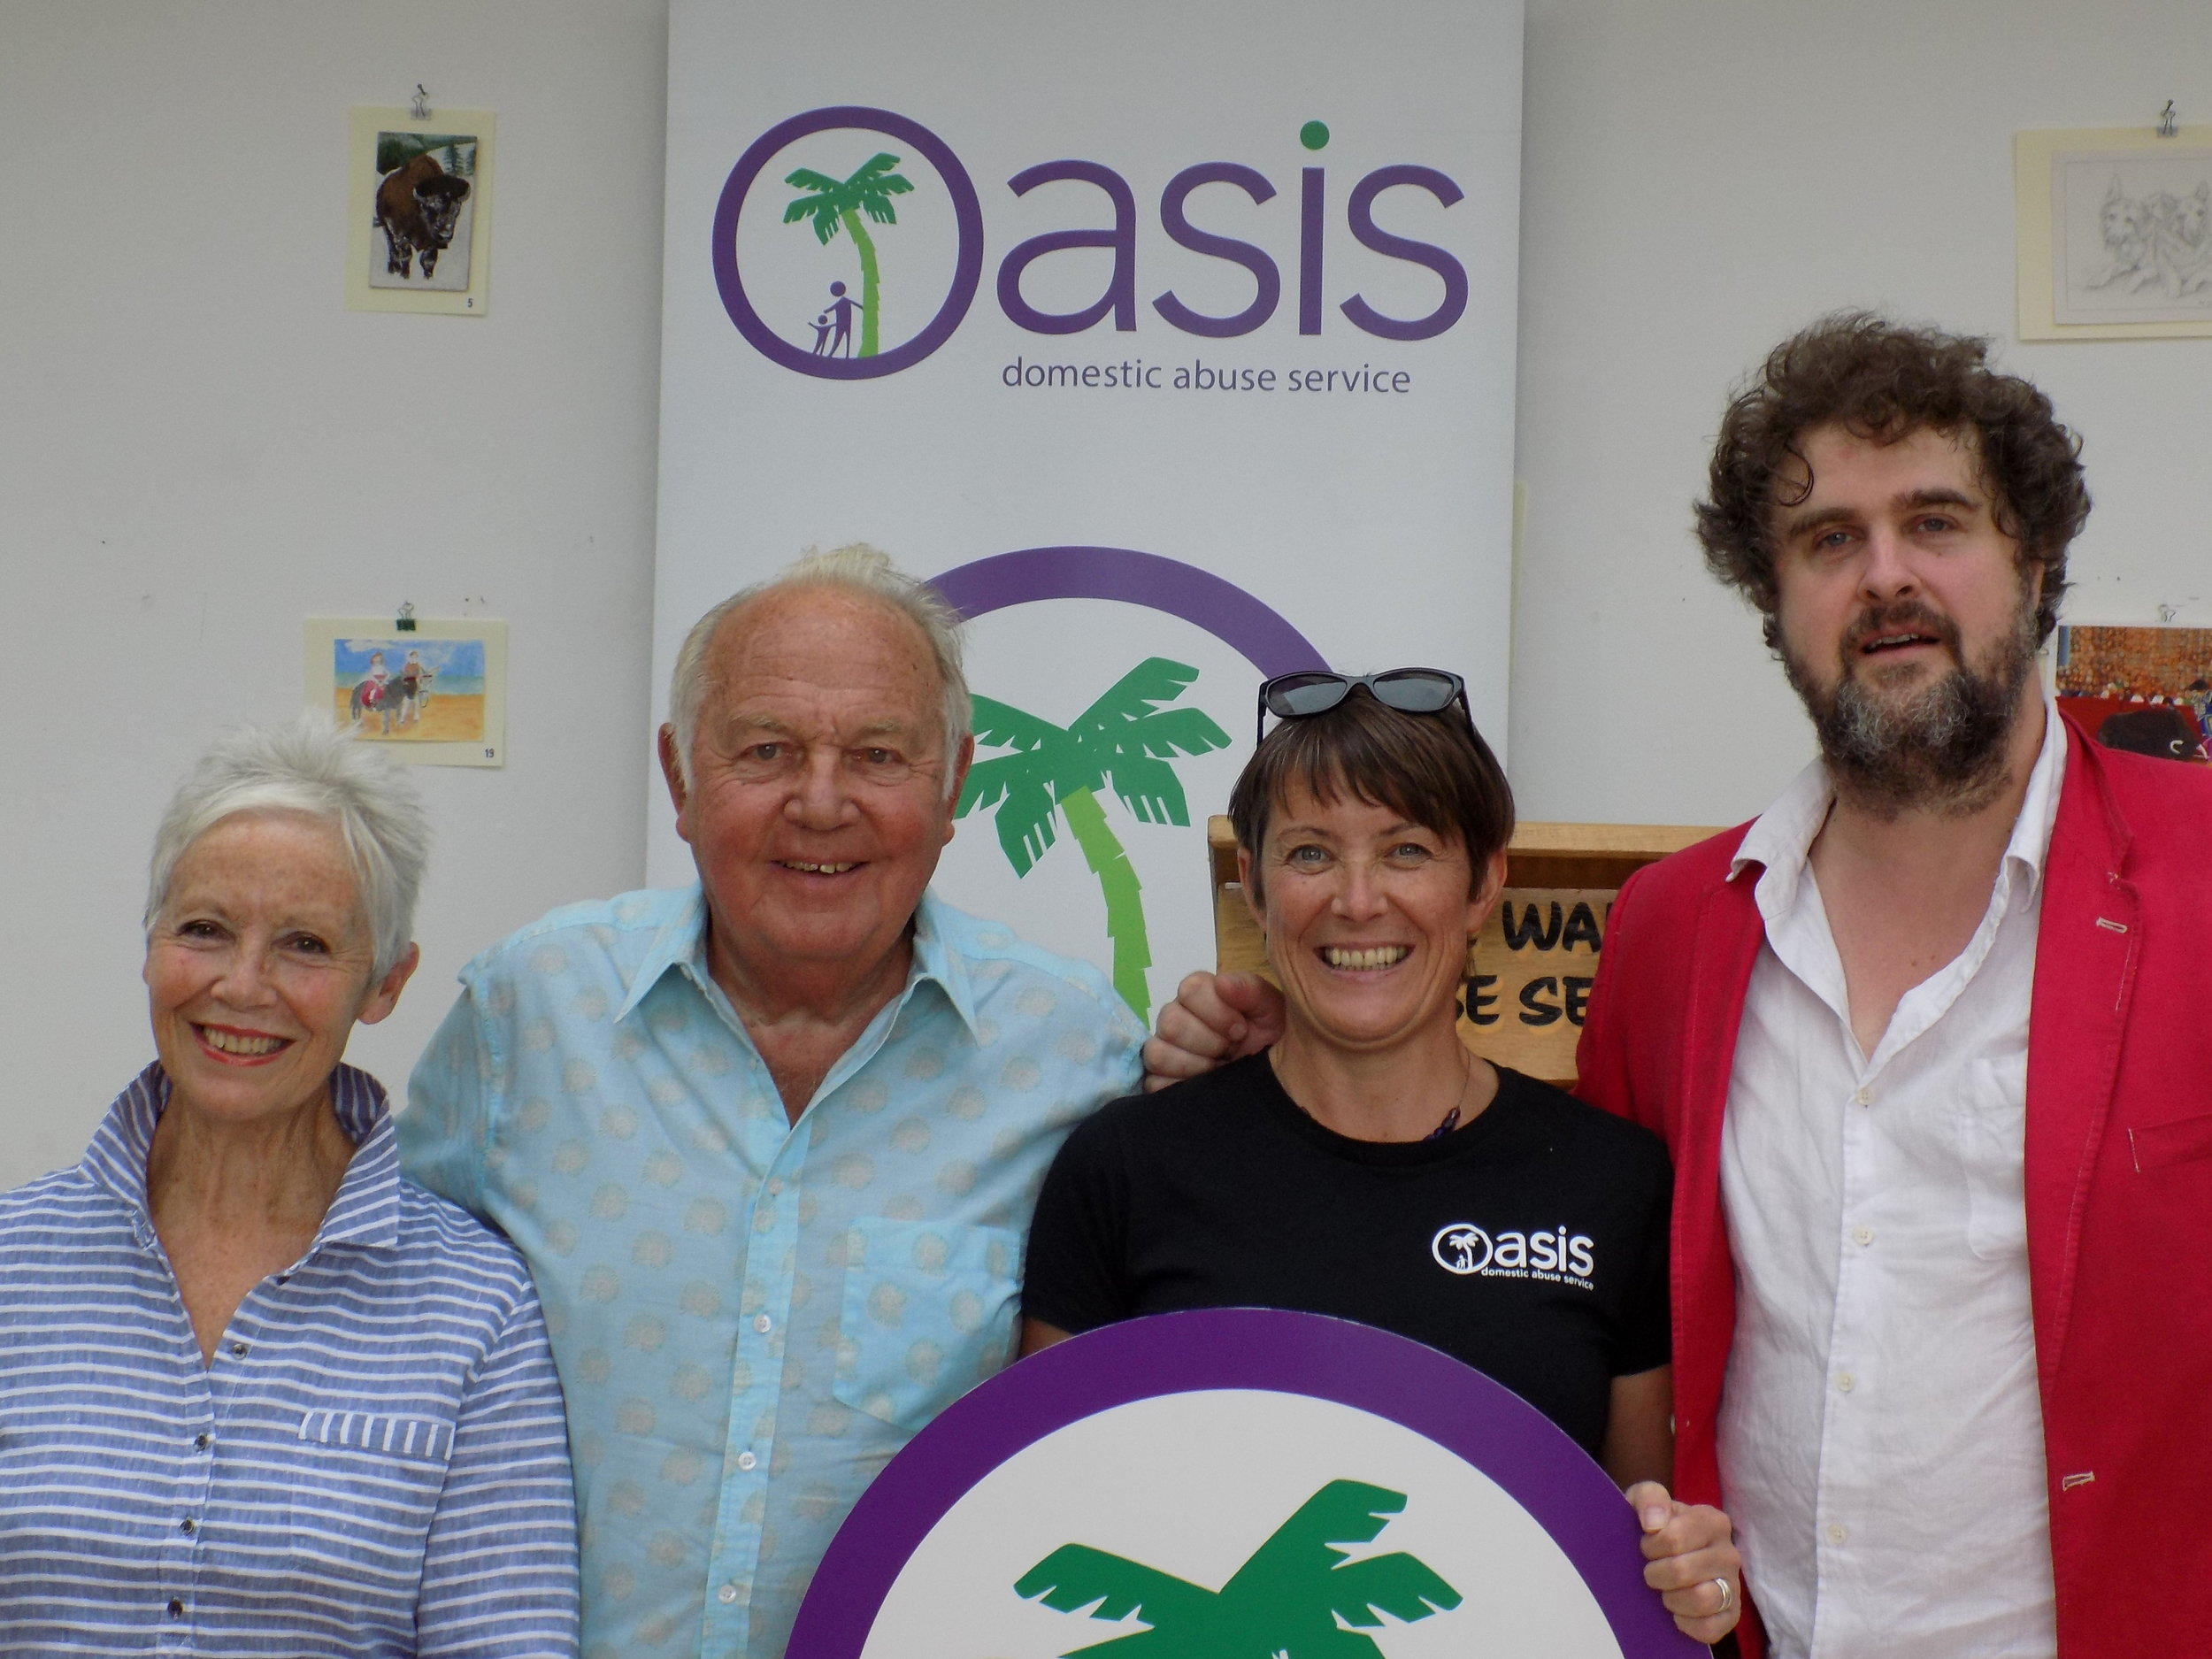 Barbara Sturgeon, Frank Thorely and Will Wollen with Oasis CEO Deborah Cartwright